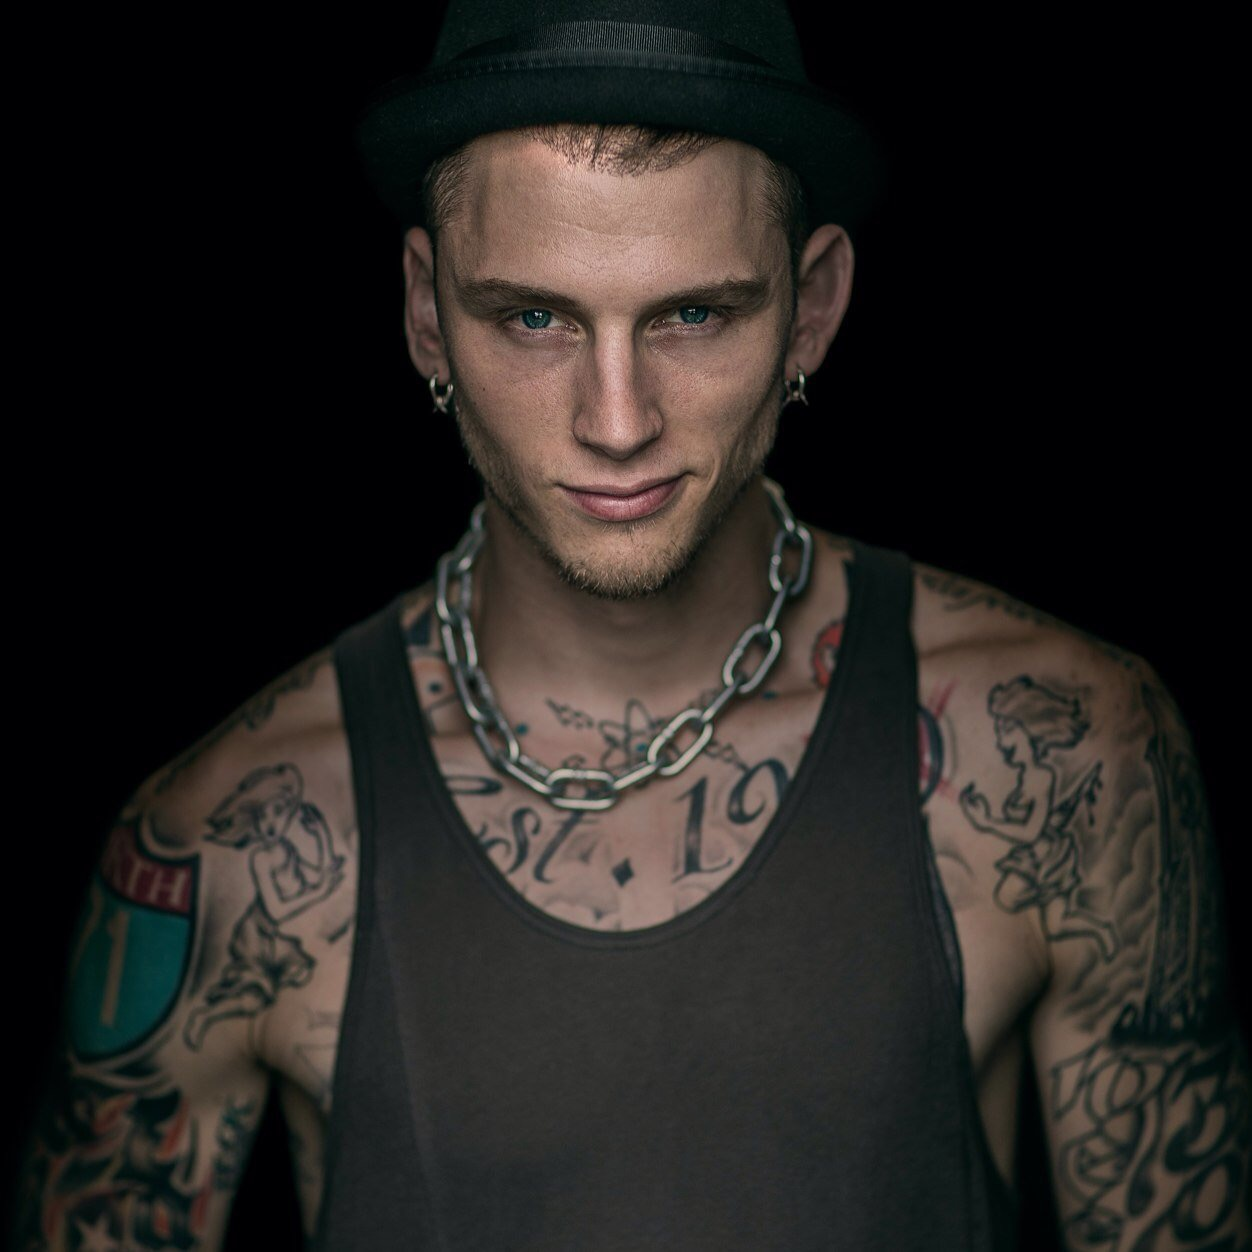 machine gun kelly tattoos - photo #15